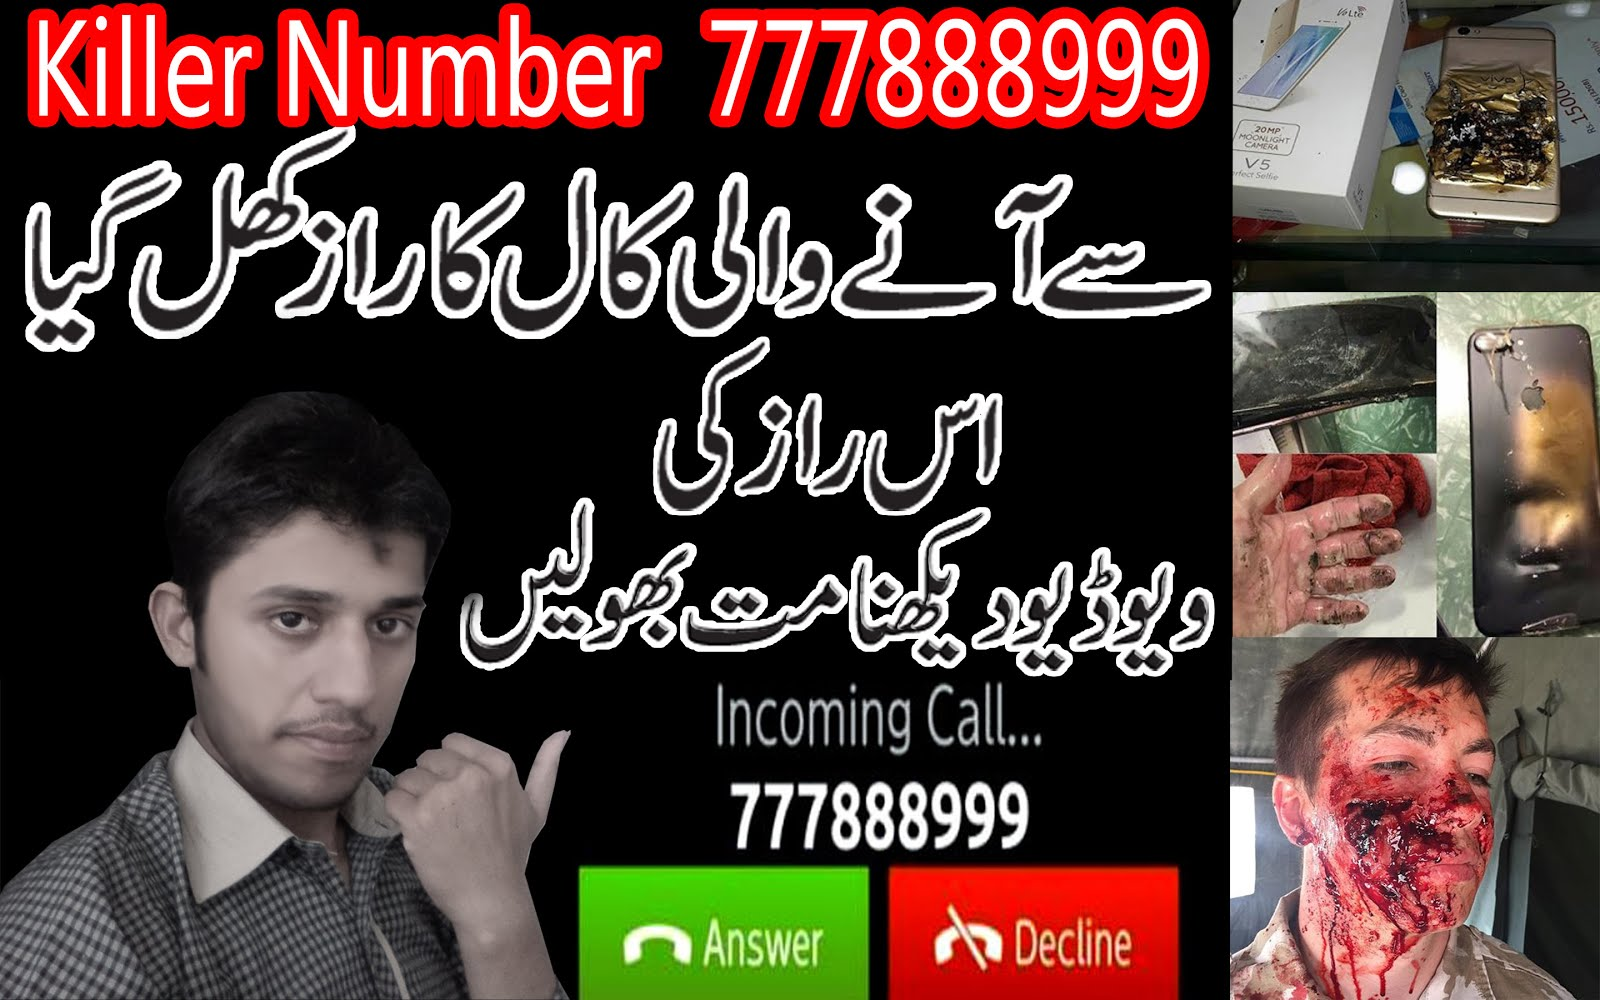 What is the Reality of The Killer Number 777888999 - PC Soft